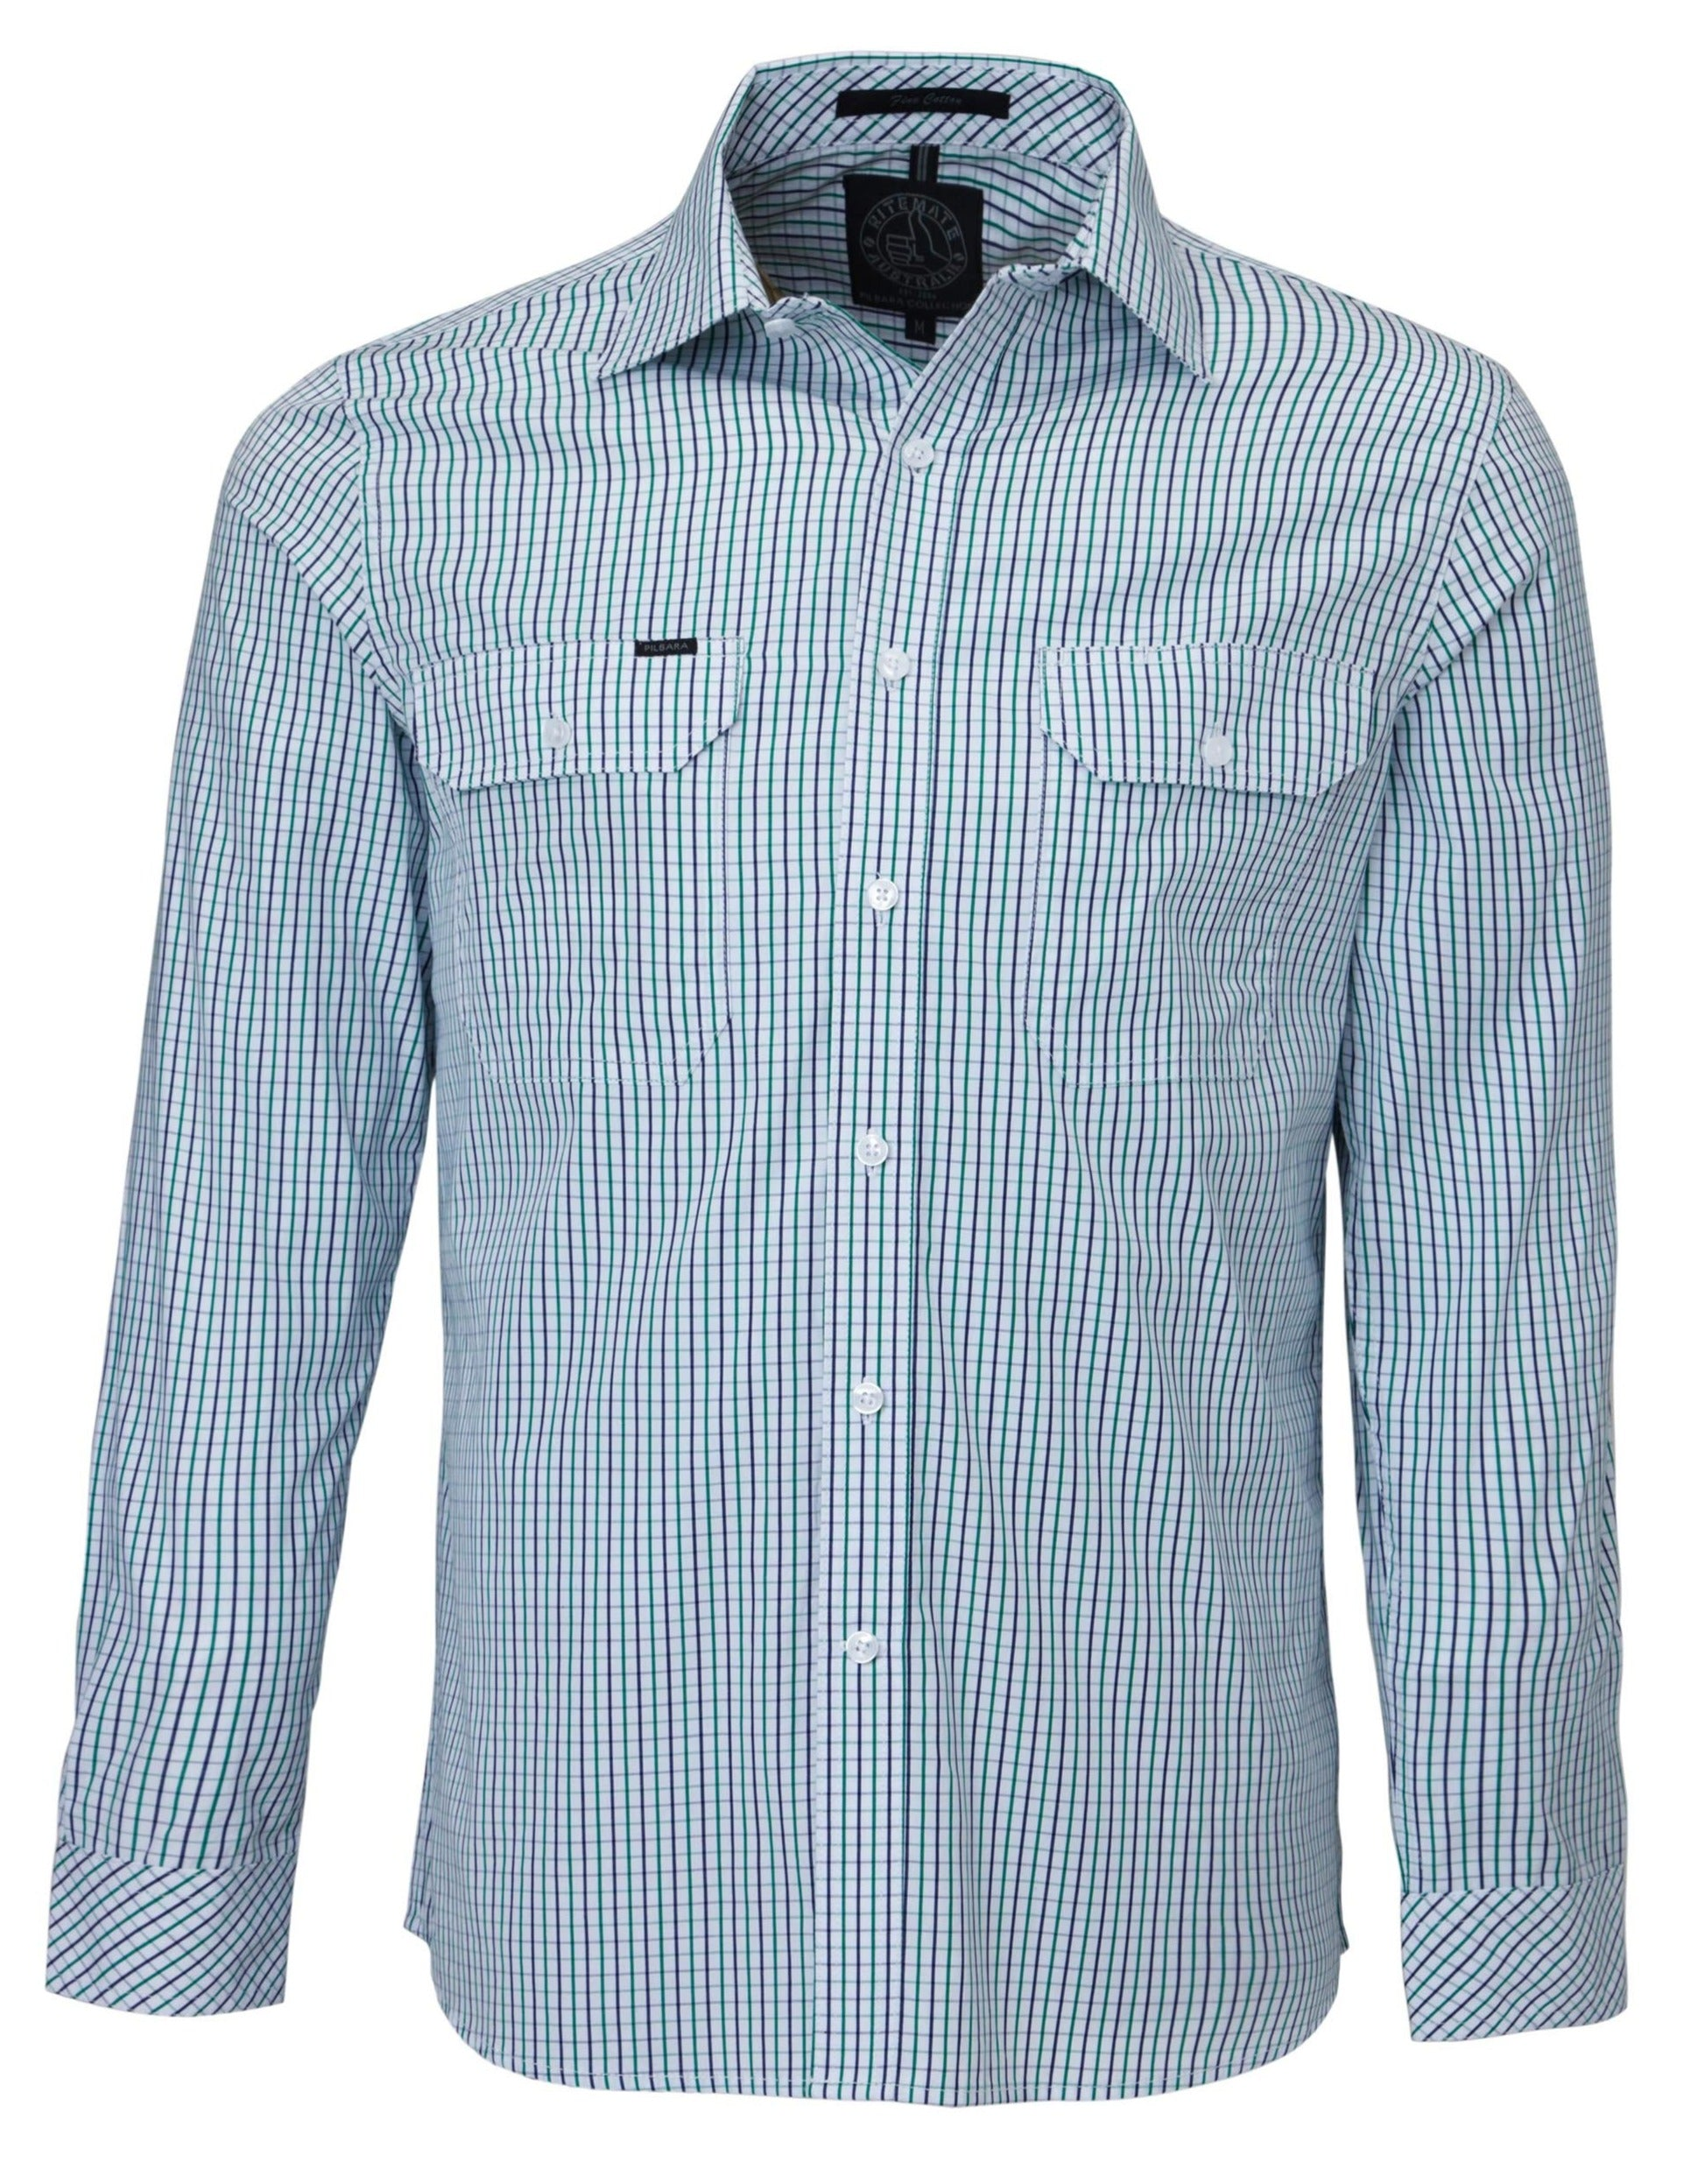 Ritemate Pilbara Check Double Pocket Shirt (4498139414665)